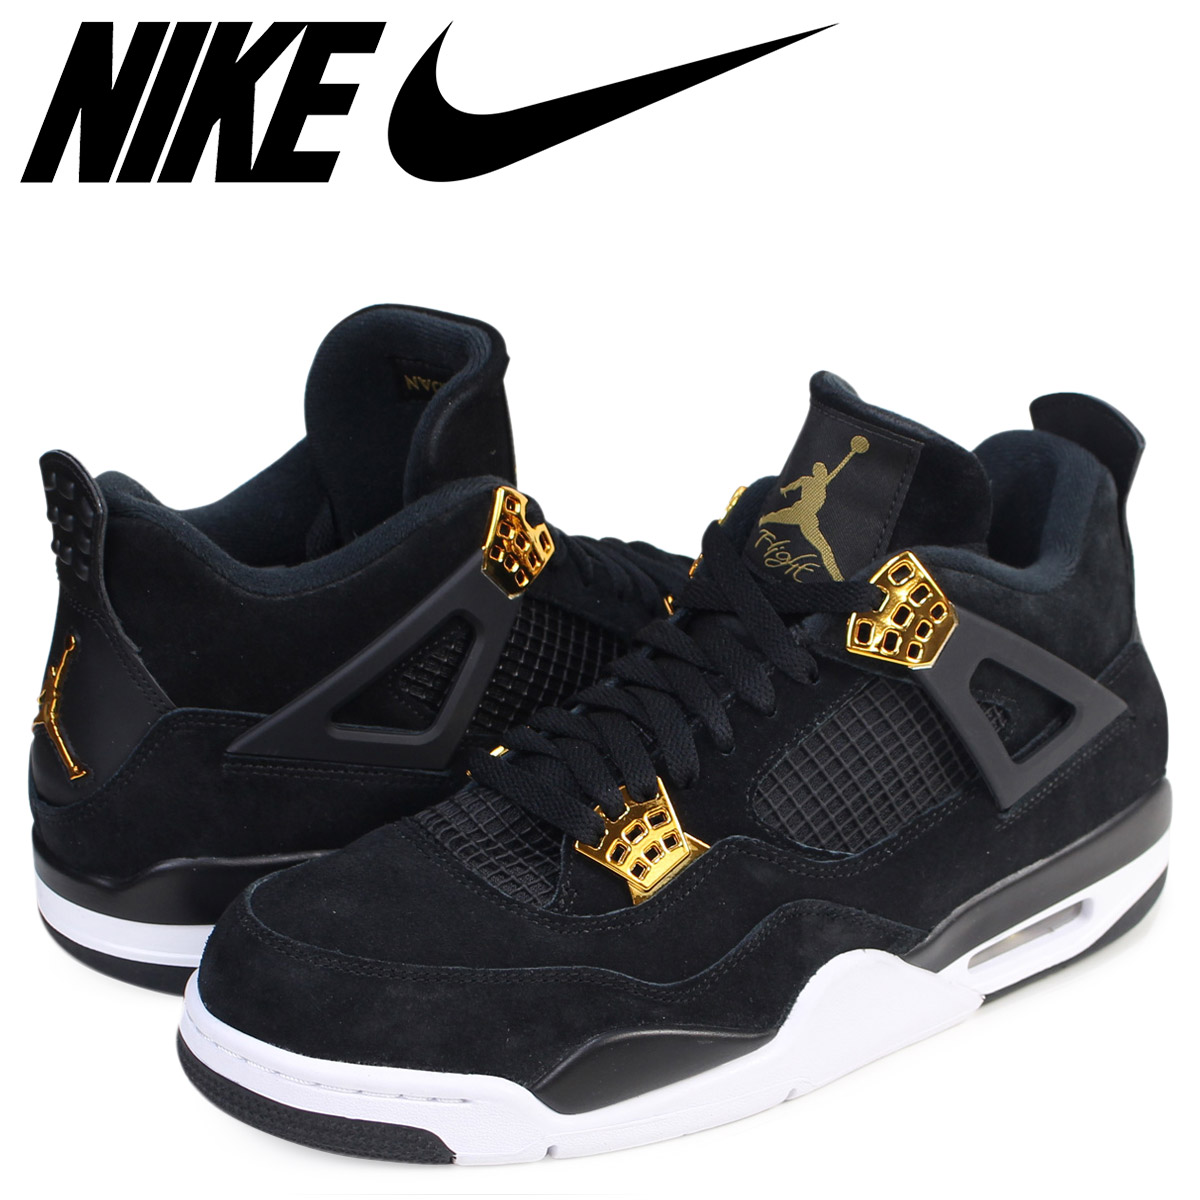 low priced 1aa0c c8bb3 Nike NIKE Air Jordan 4 nostalgic sneakers AIR JORDAN 4 RETRO ROYALTY 308,497 -032 men s shoes black  8 2 Shinnyu load